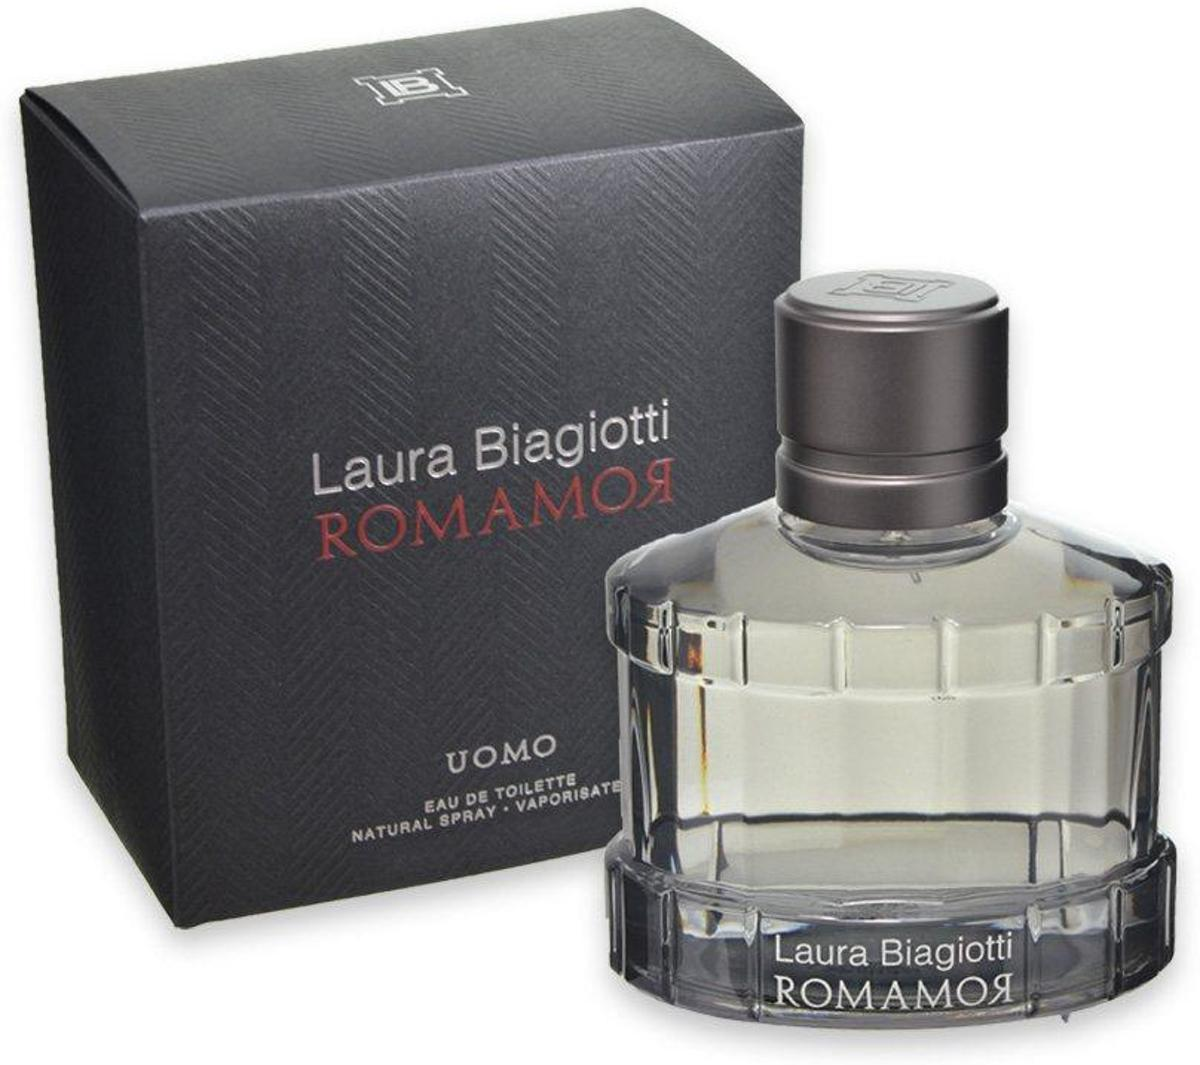 Laura Biagiotti Romamor Uomo Edt Spray 75ml